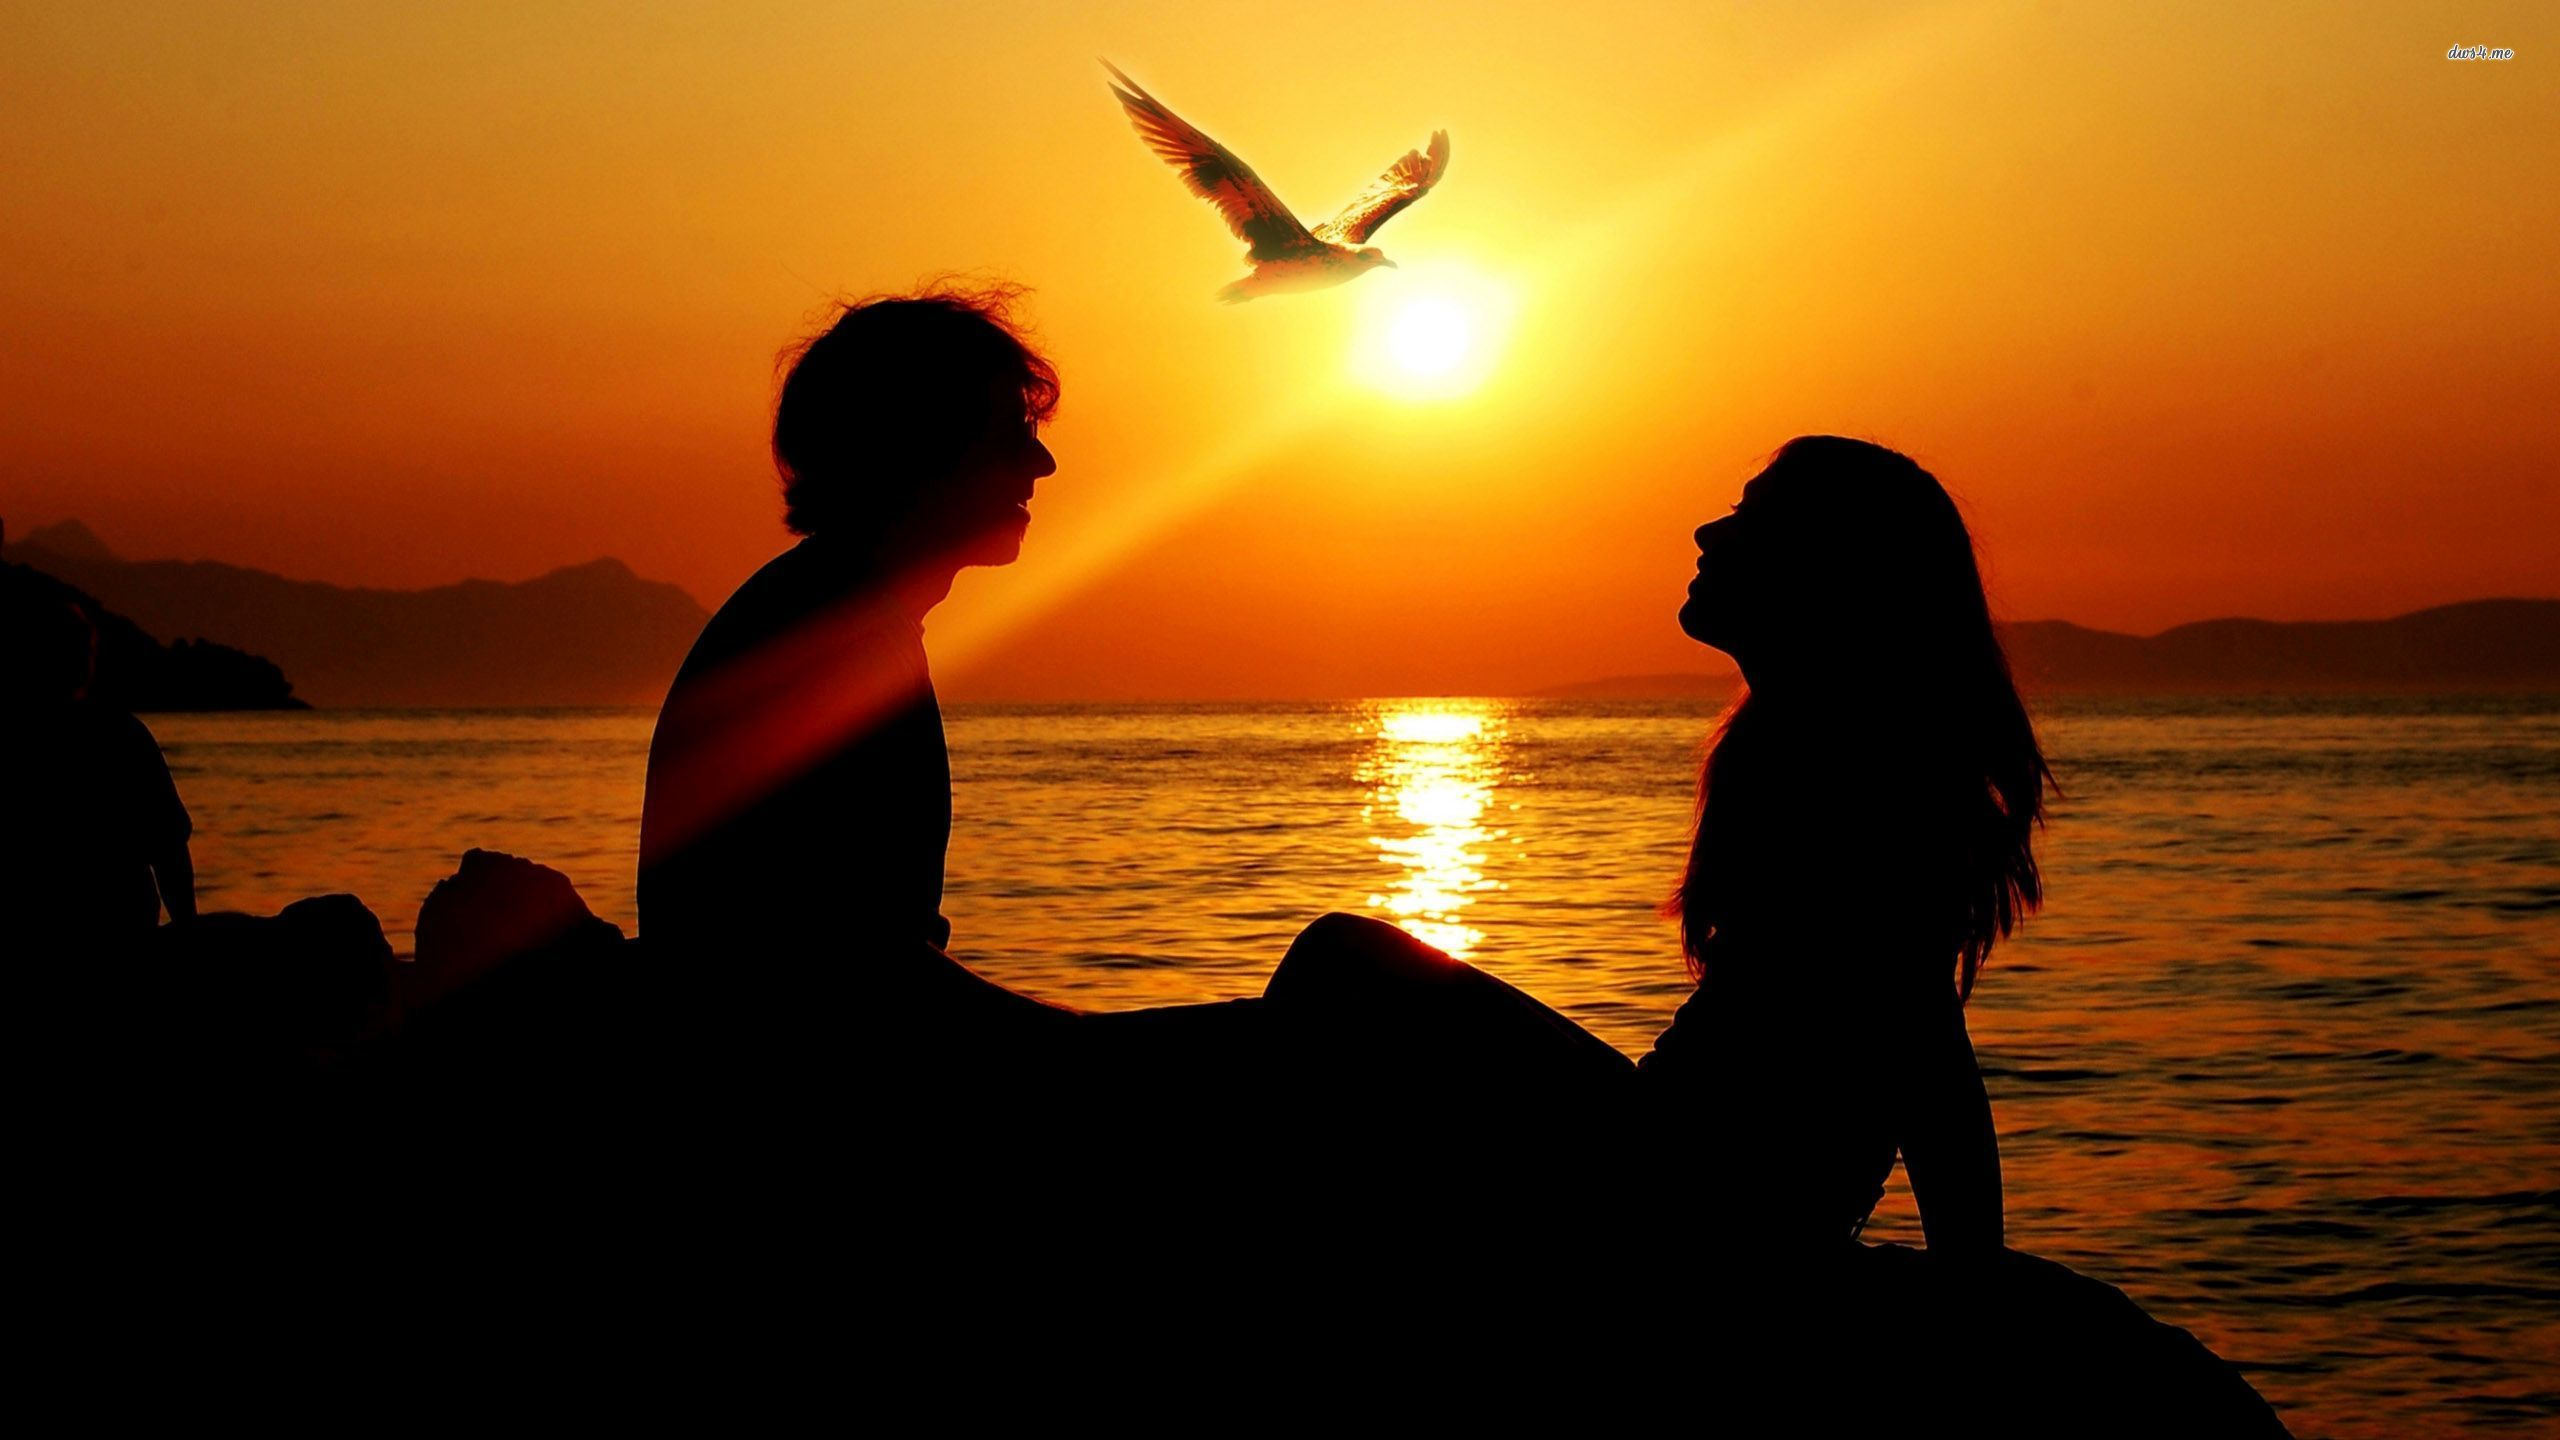 29427-man-and-woman-in-the-sunset-2560x1440-photography-wallpaper.jpg